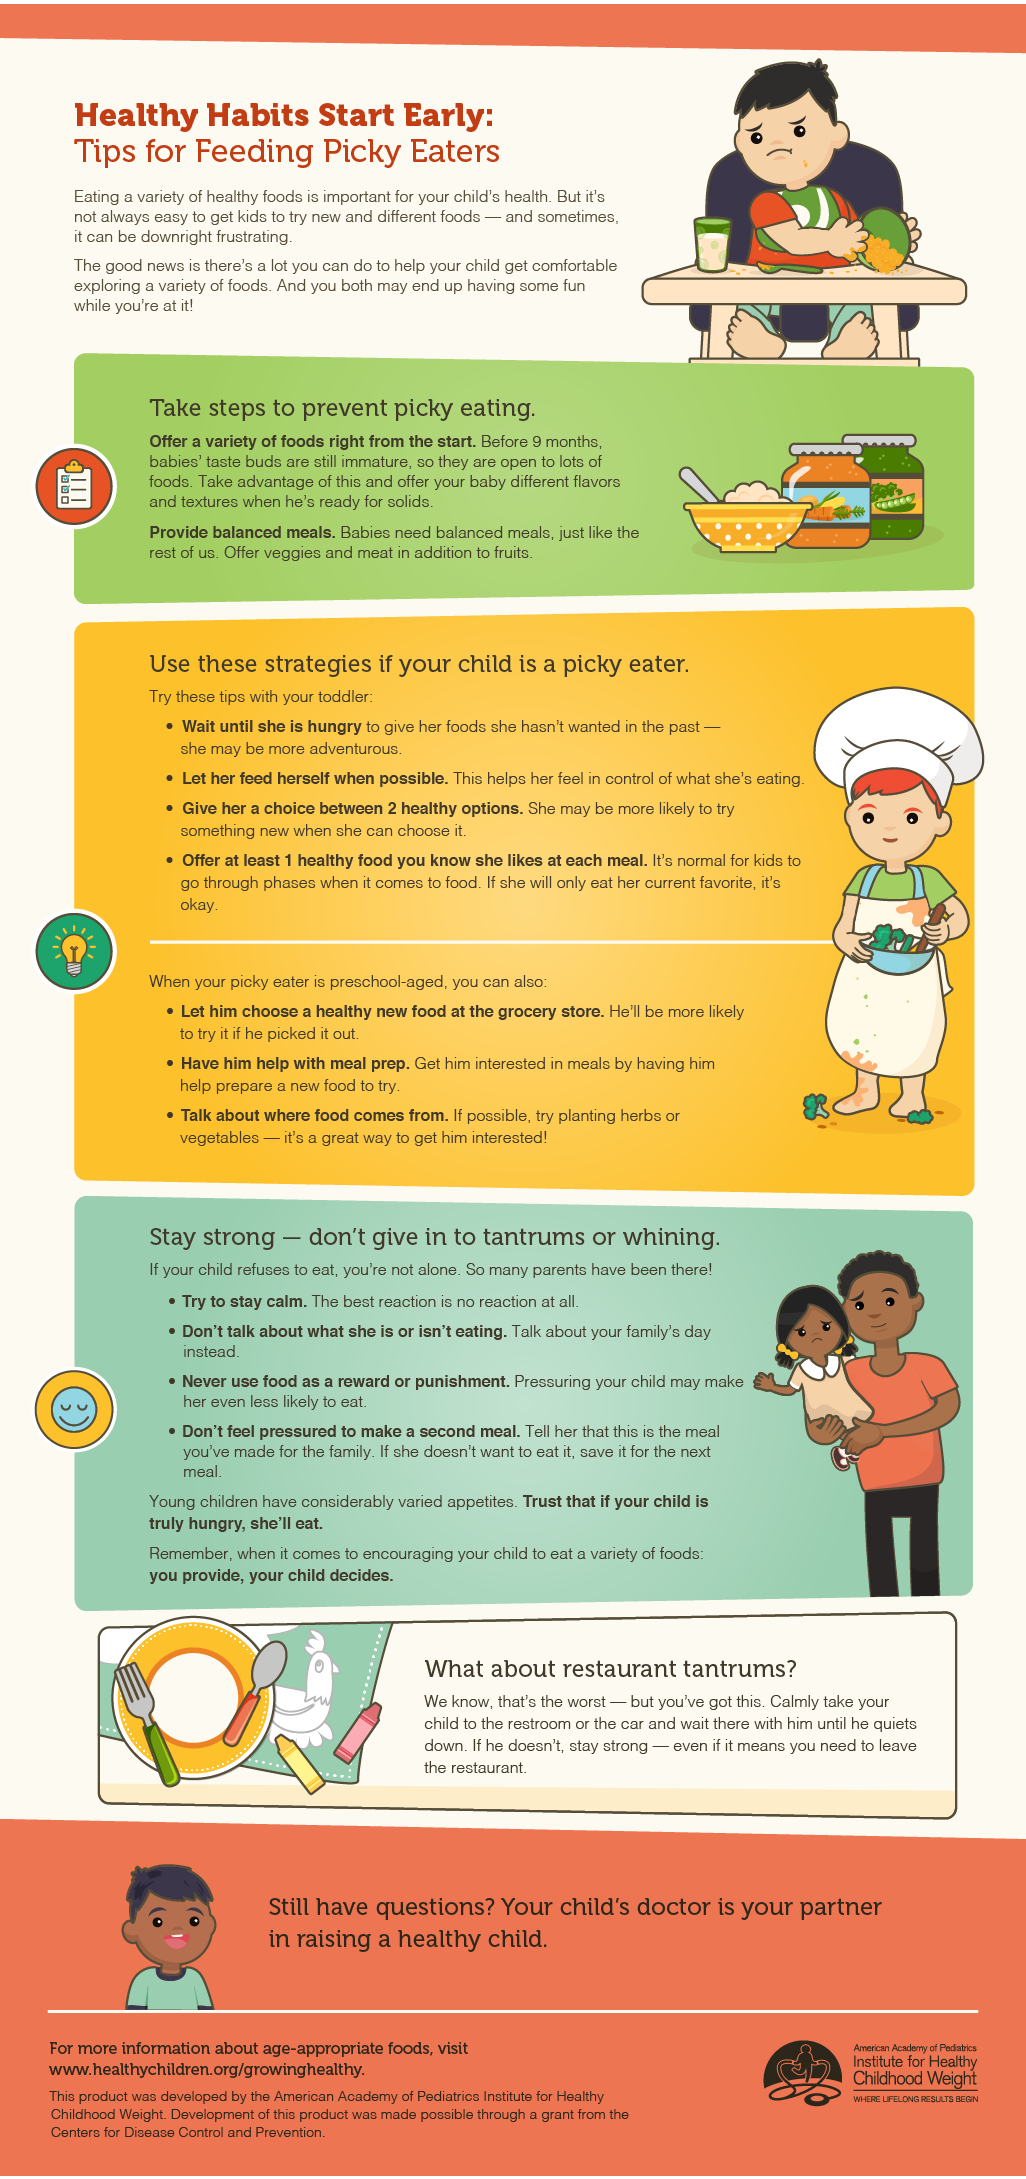 Infographic - Tips for Feeding Picky Eaters